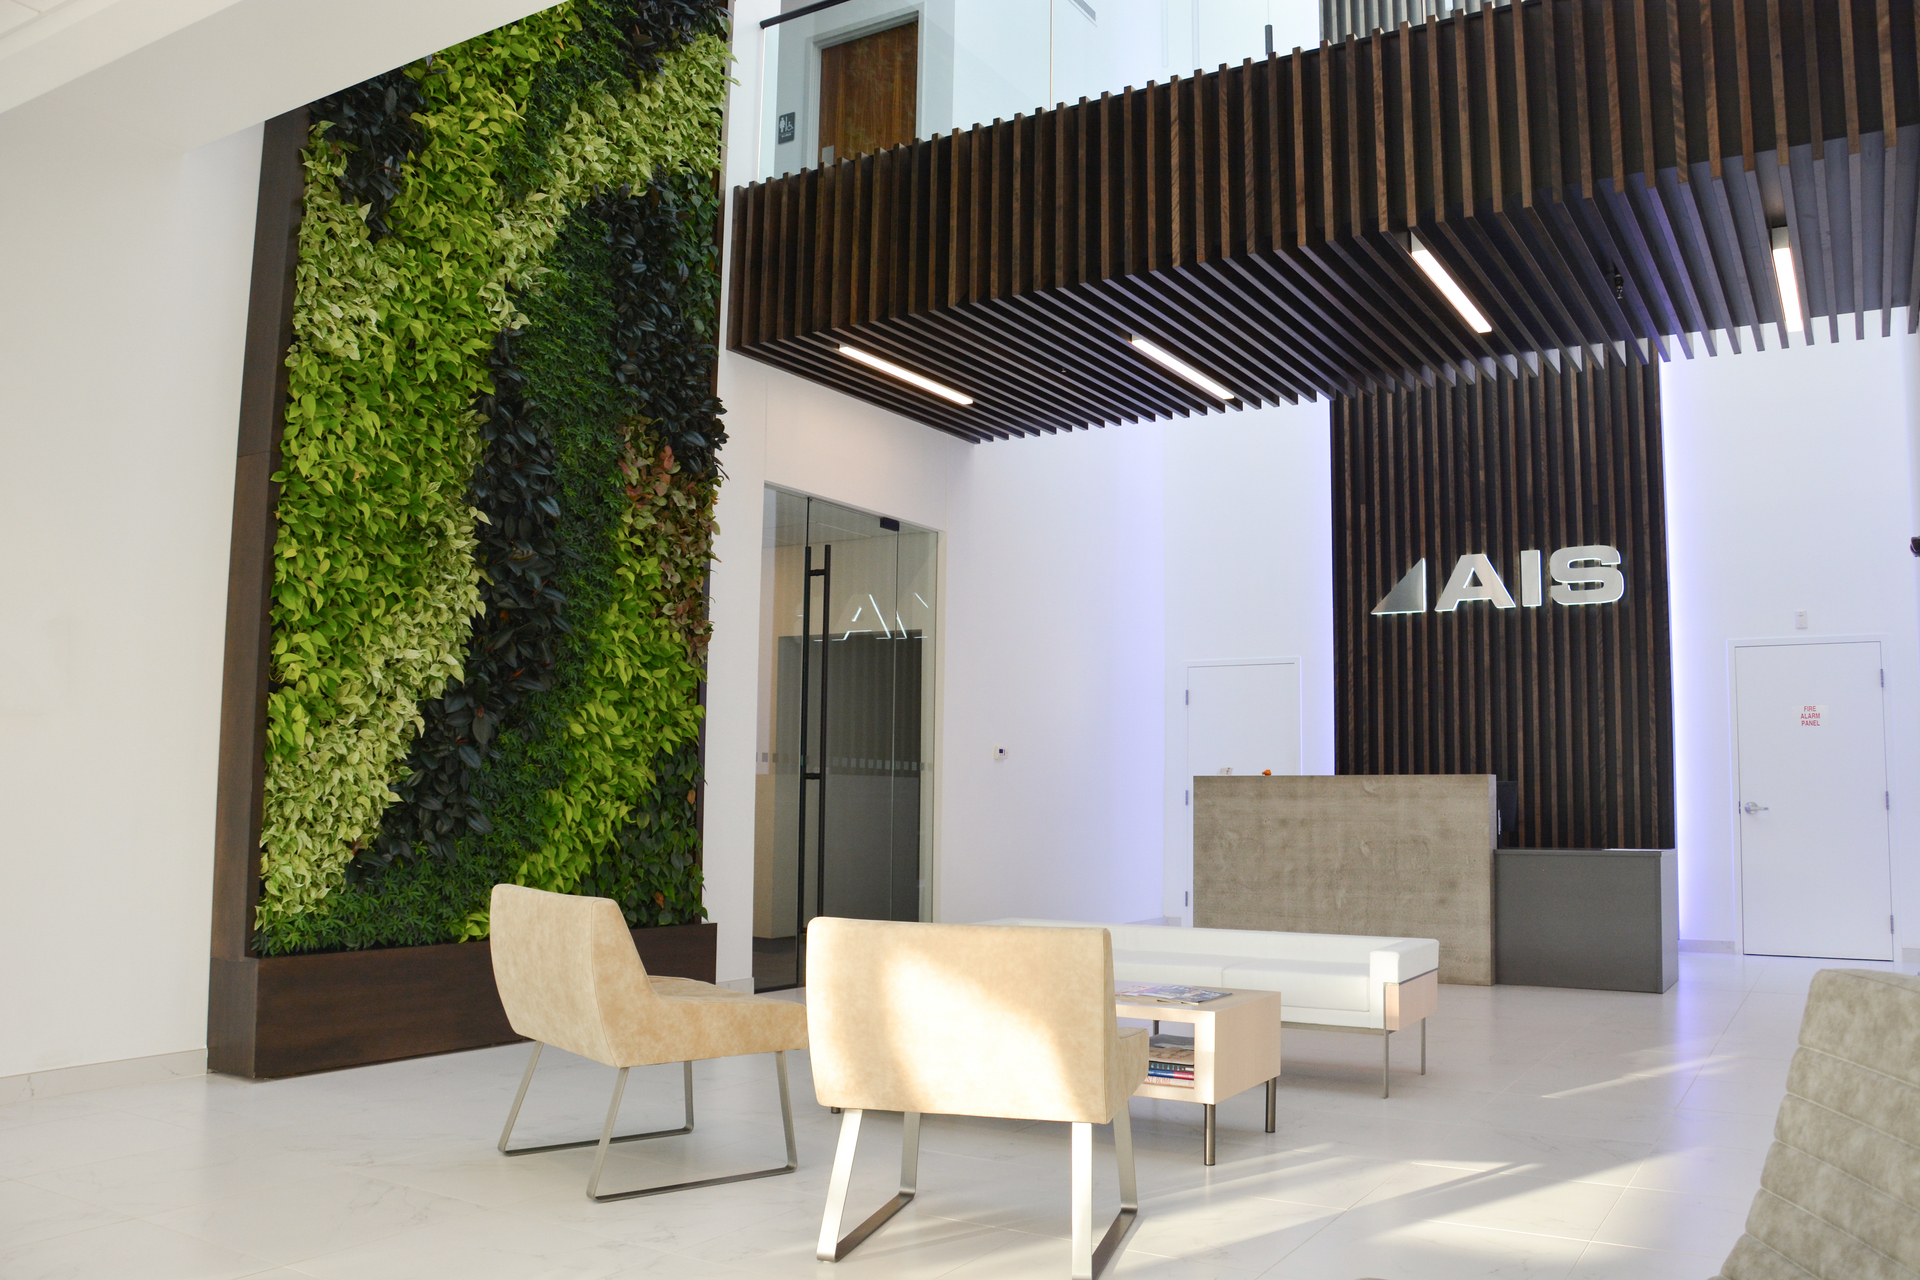 Ingenuity and creativity keep Affordable Interior Systems (AIS) moving. One of the top 25 manufacturing firms in North America, AIS sought to centralize the company in 1 location to eliminate interplant transportation costs, poor communication, longer lead times, and duplication of work.